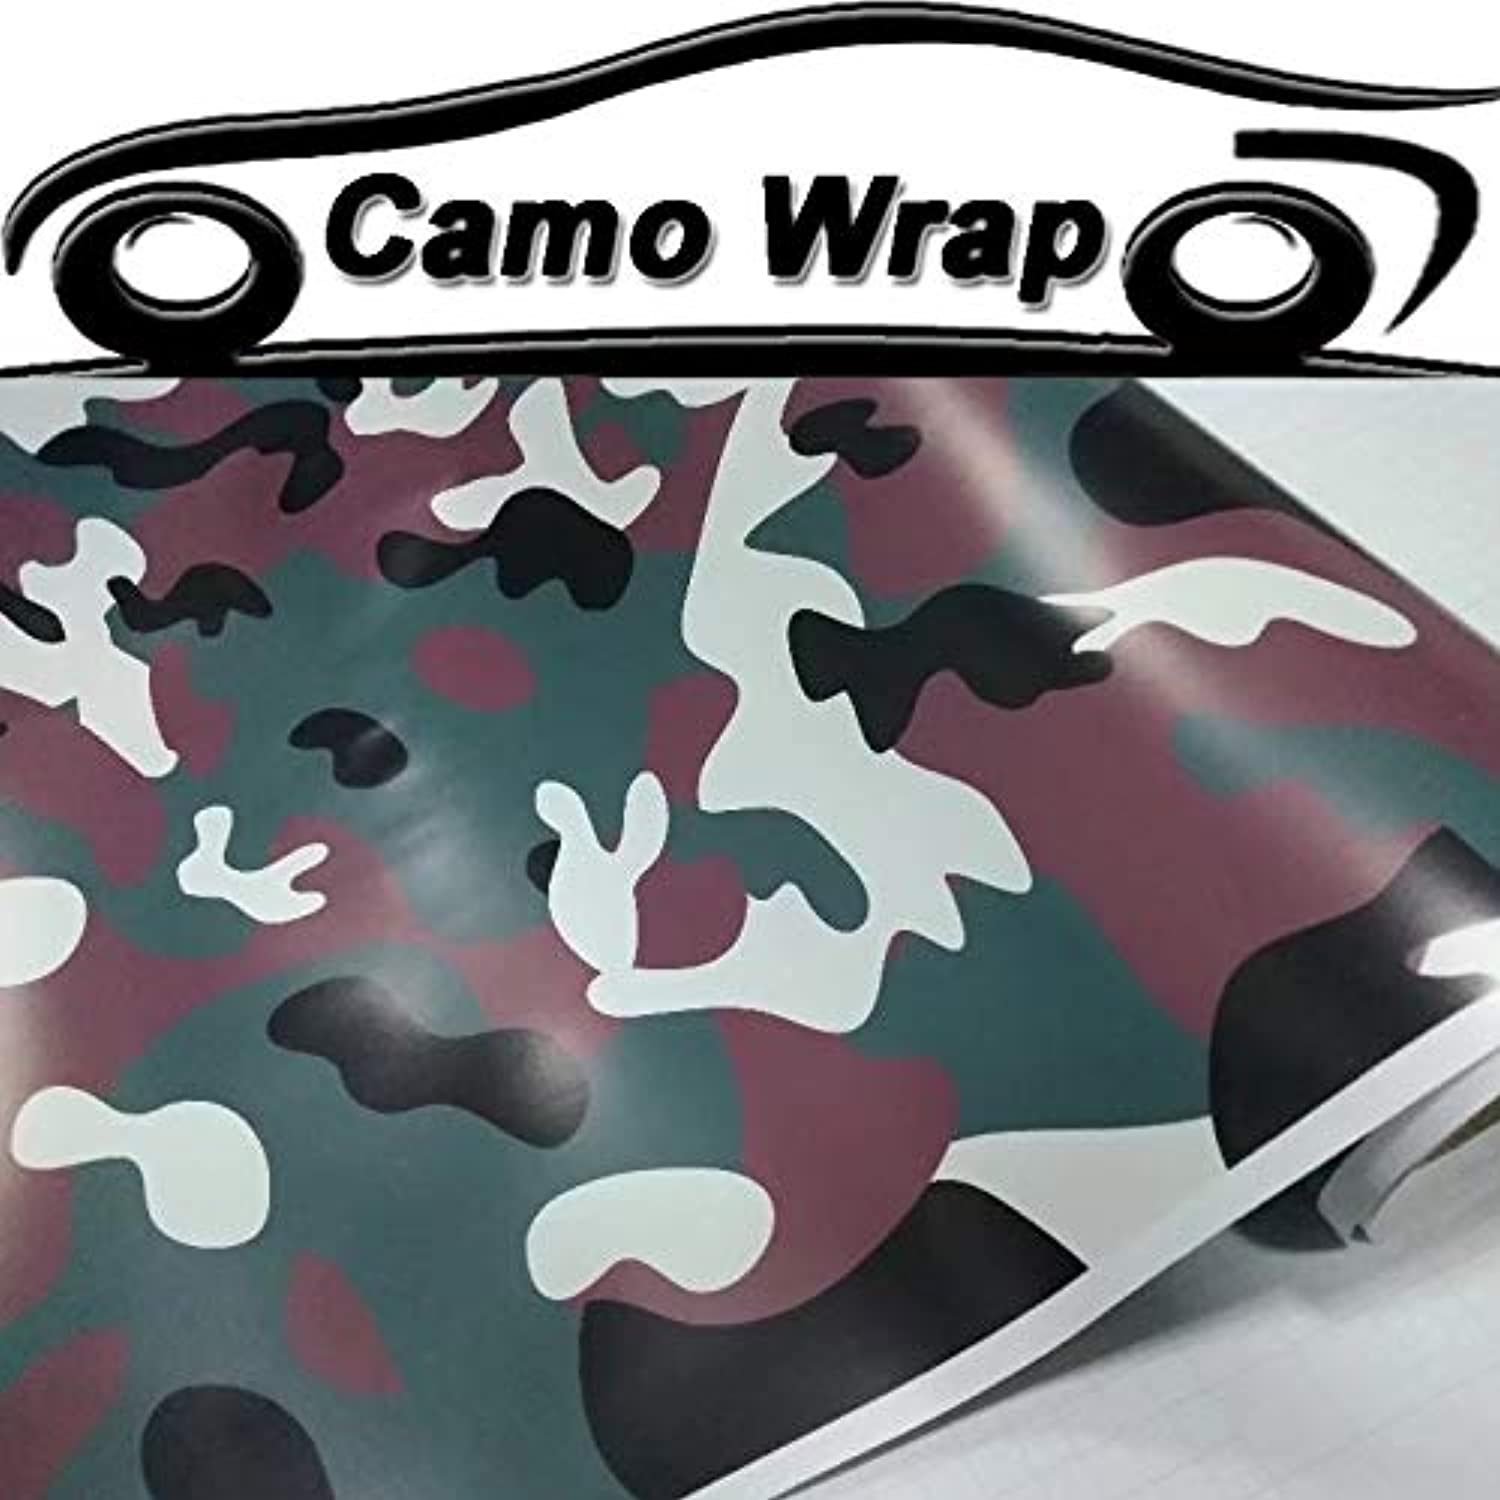 Forest Vinyl Film Black Green Car Wrap with Air Bubble Free Army Green Car Sticker Decal Full Body Wrapping  (Size  152CMx15M 5X49FT)